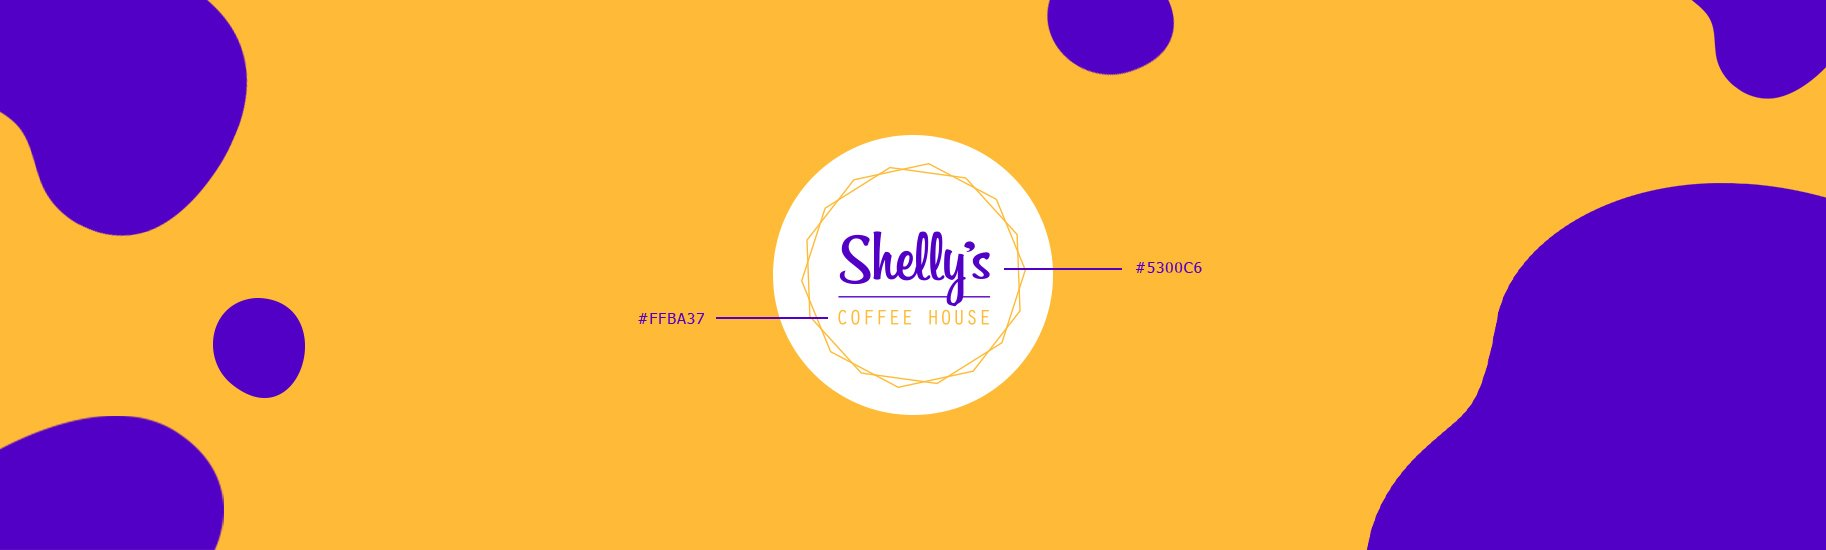 12 Logo Color Combinations You Should Design With Tailor Brands